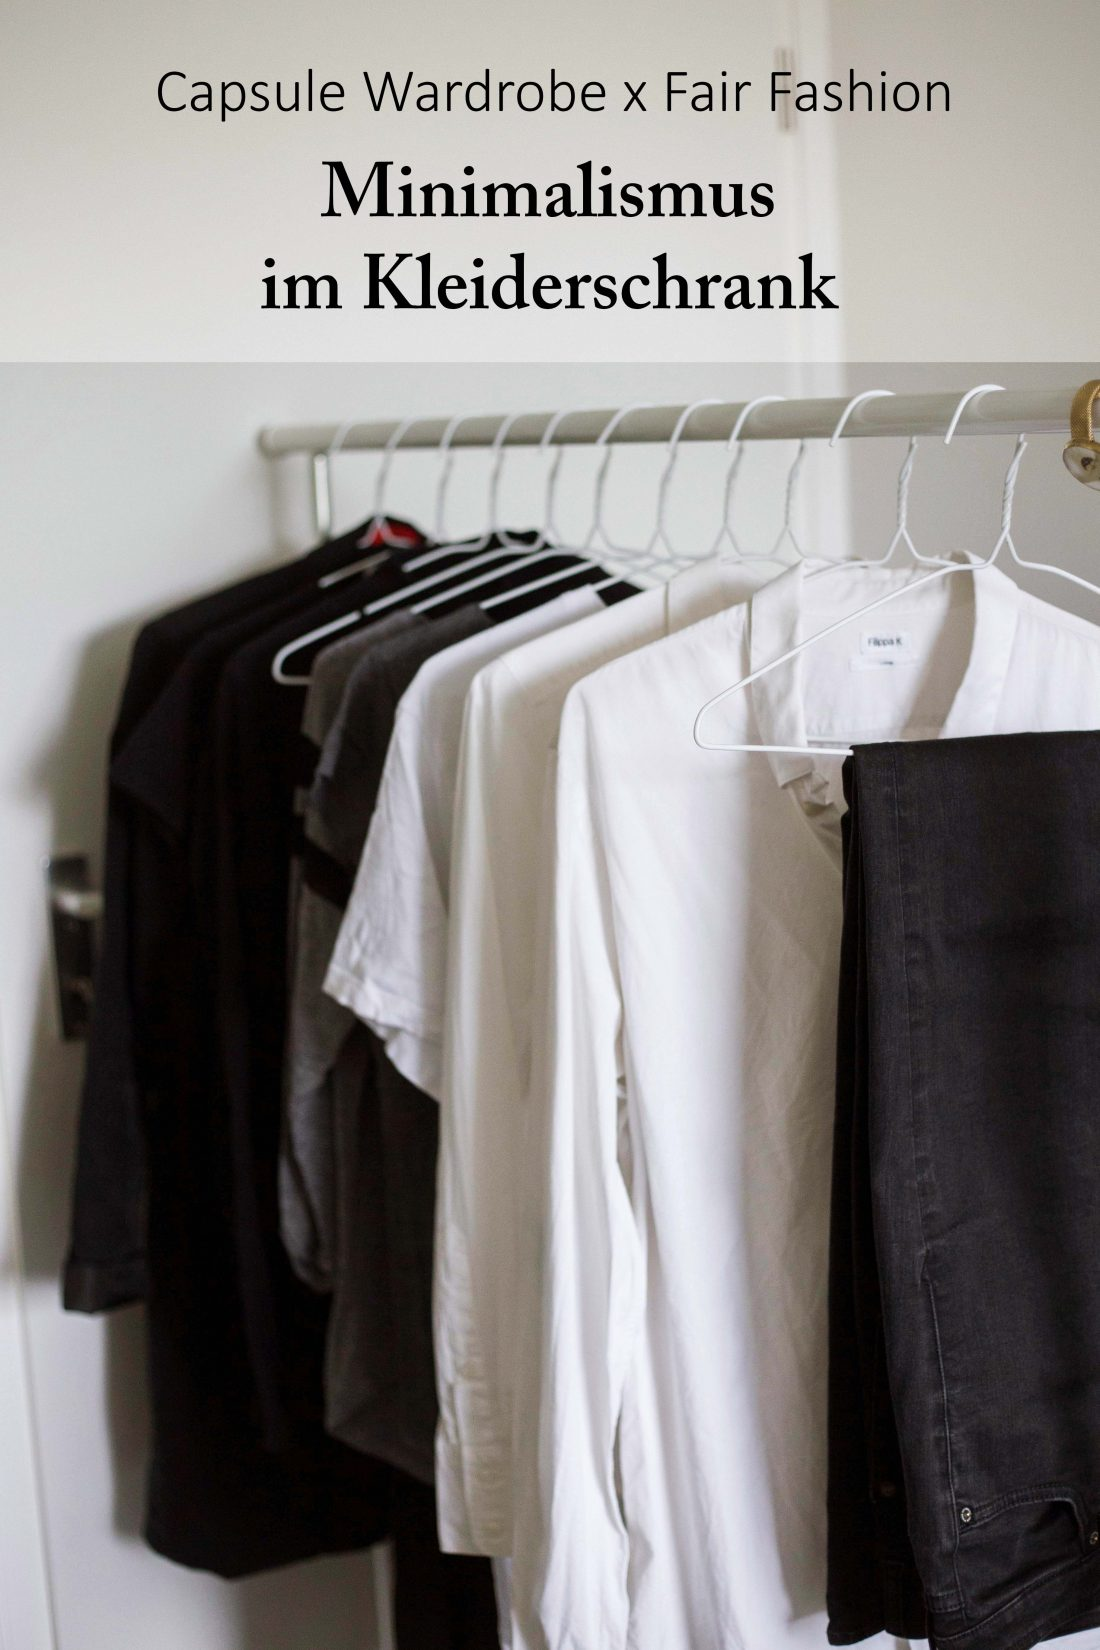 minimalismus im kleiderschrank capsule wardrobe x fair fashion the ognc. Black Bedroom Furniture Sets. Home Design Ideas